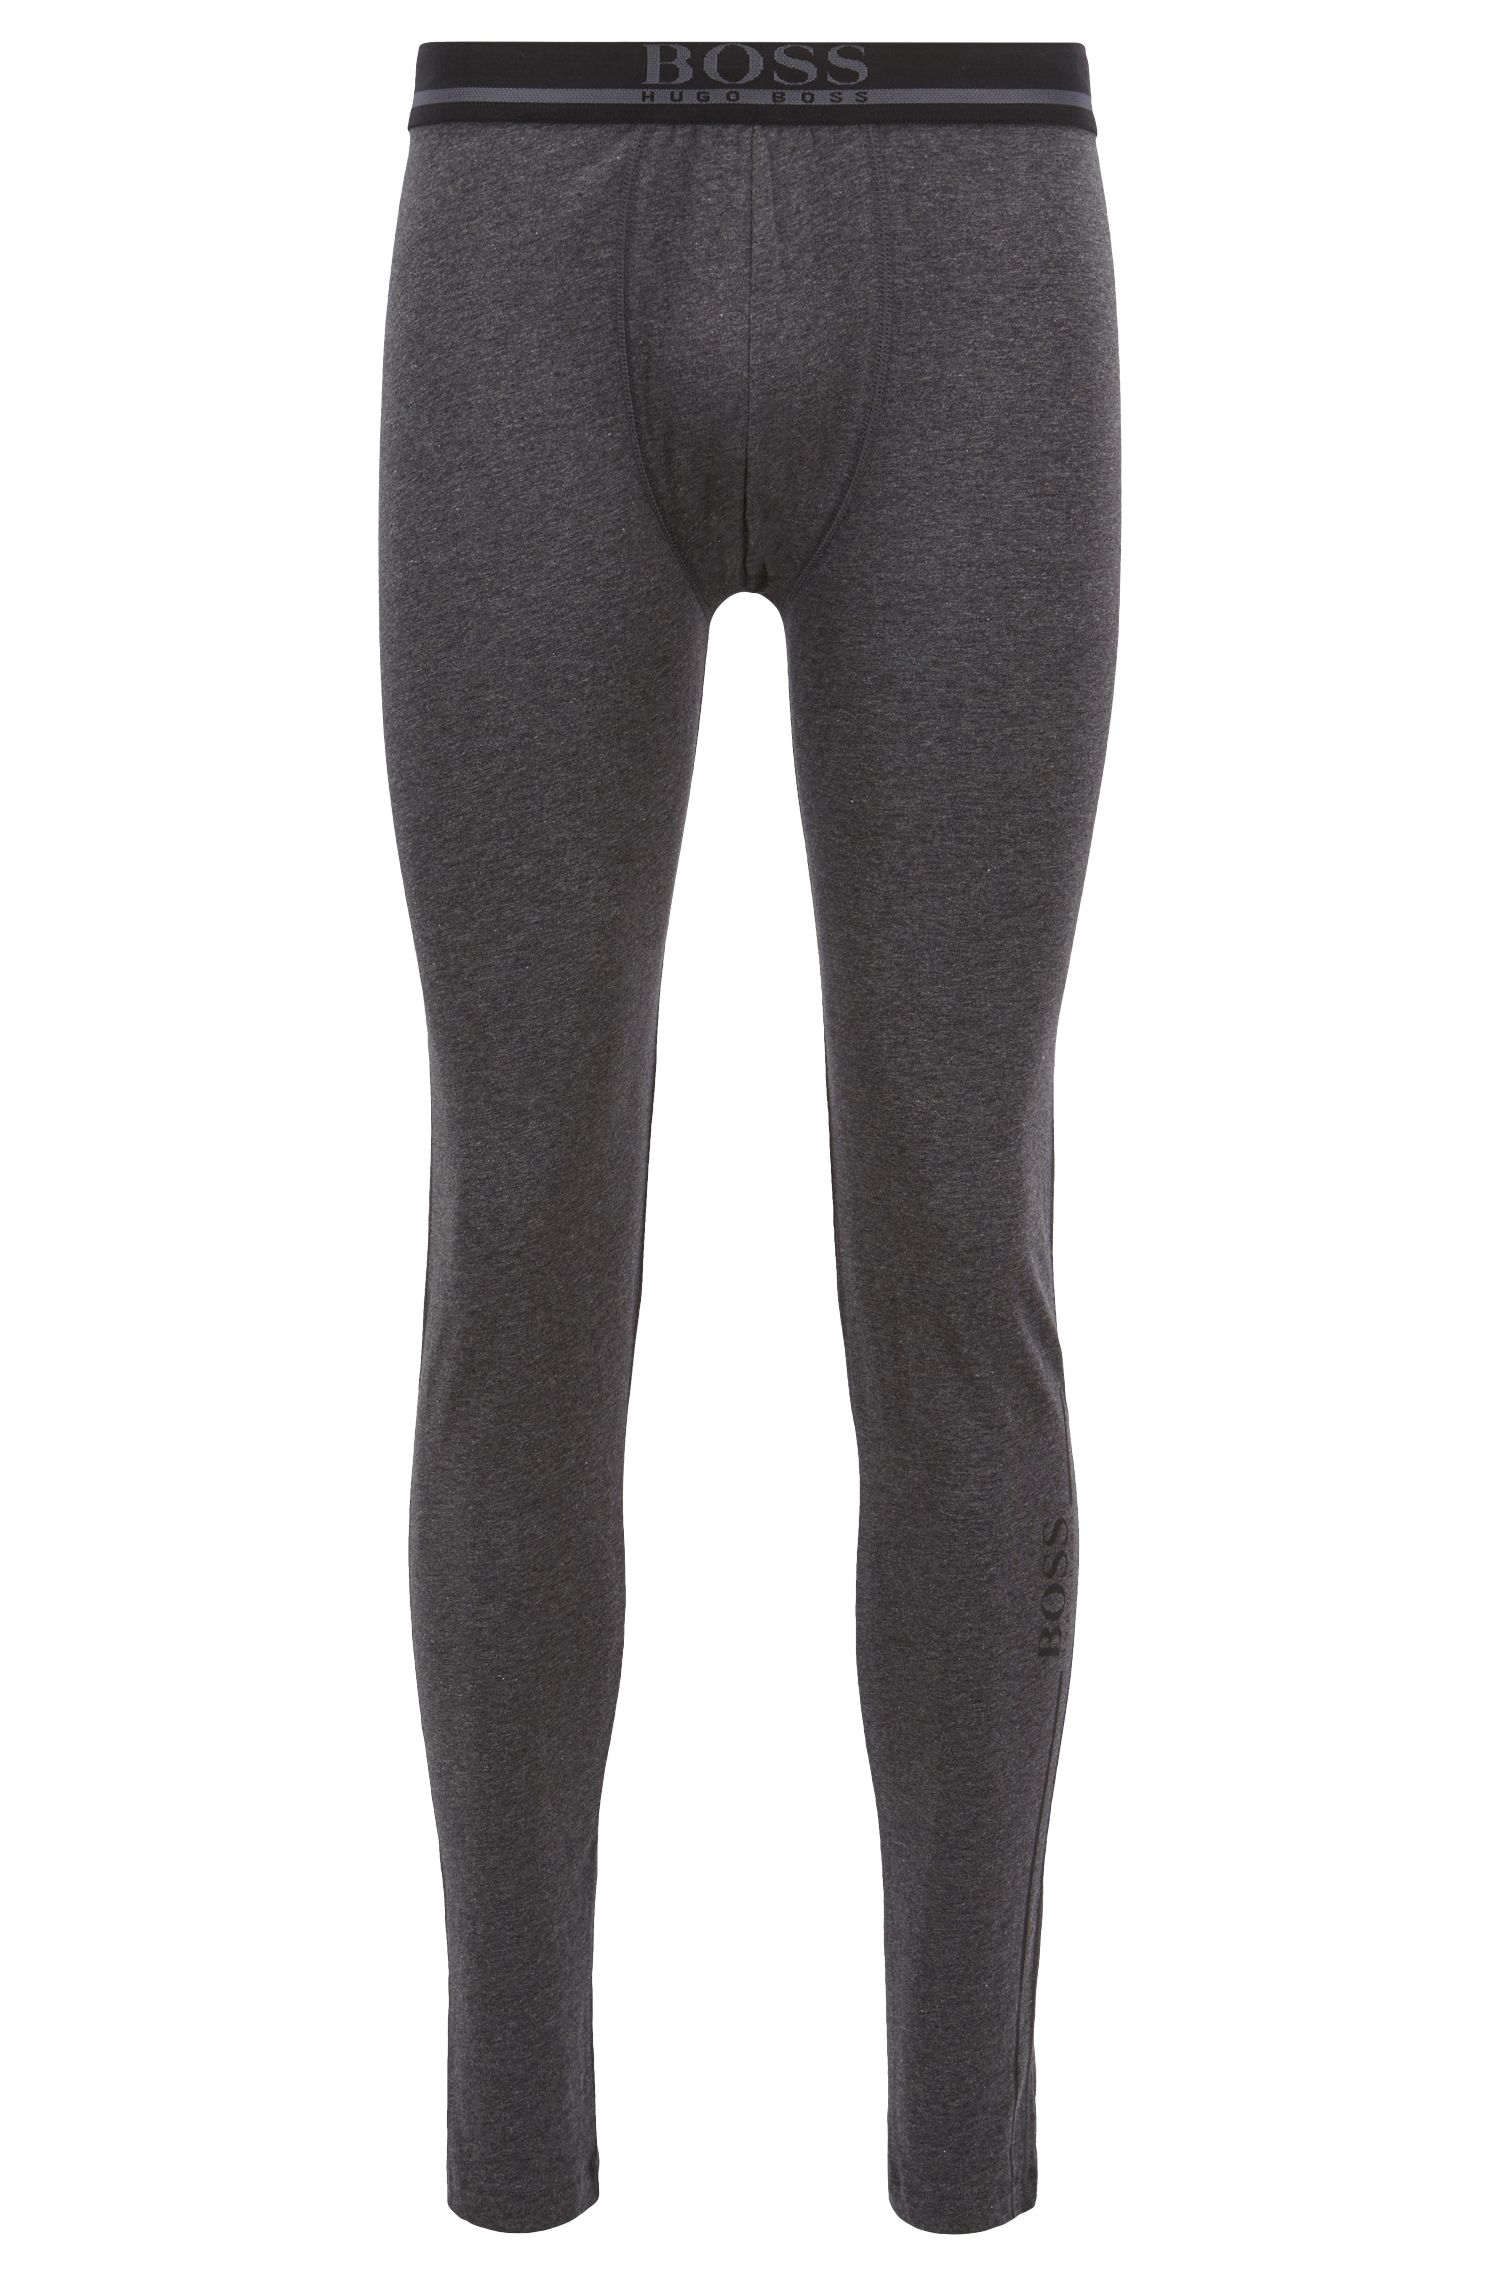 Regular-rise long johns in stretch cotton with logo, Grey